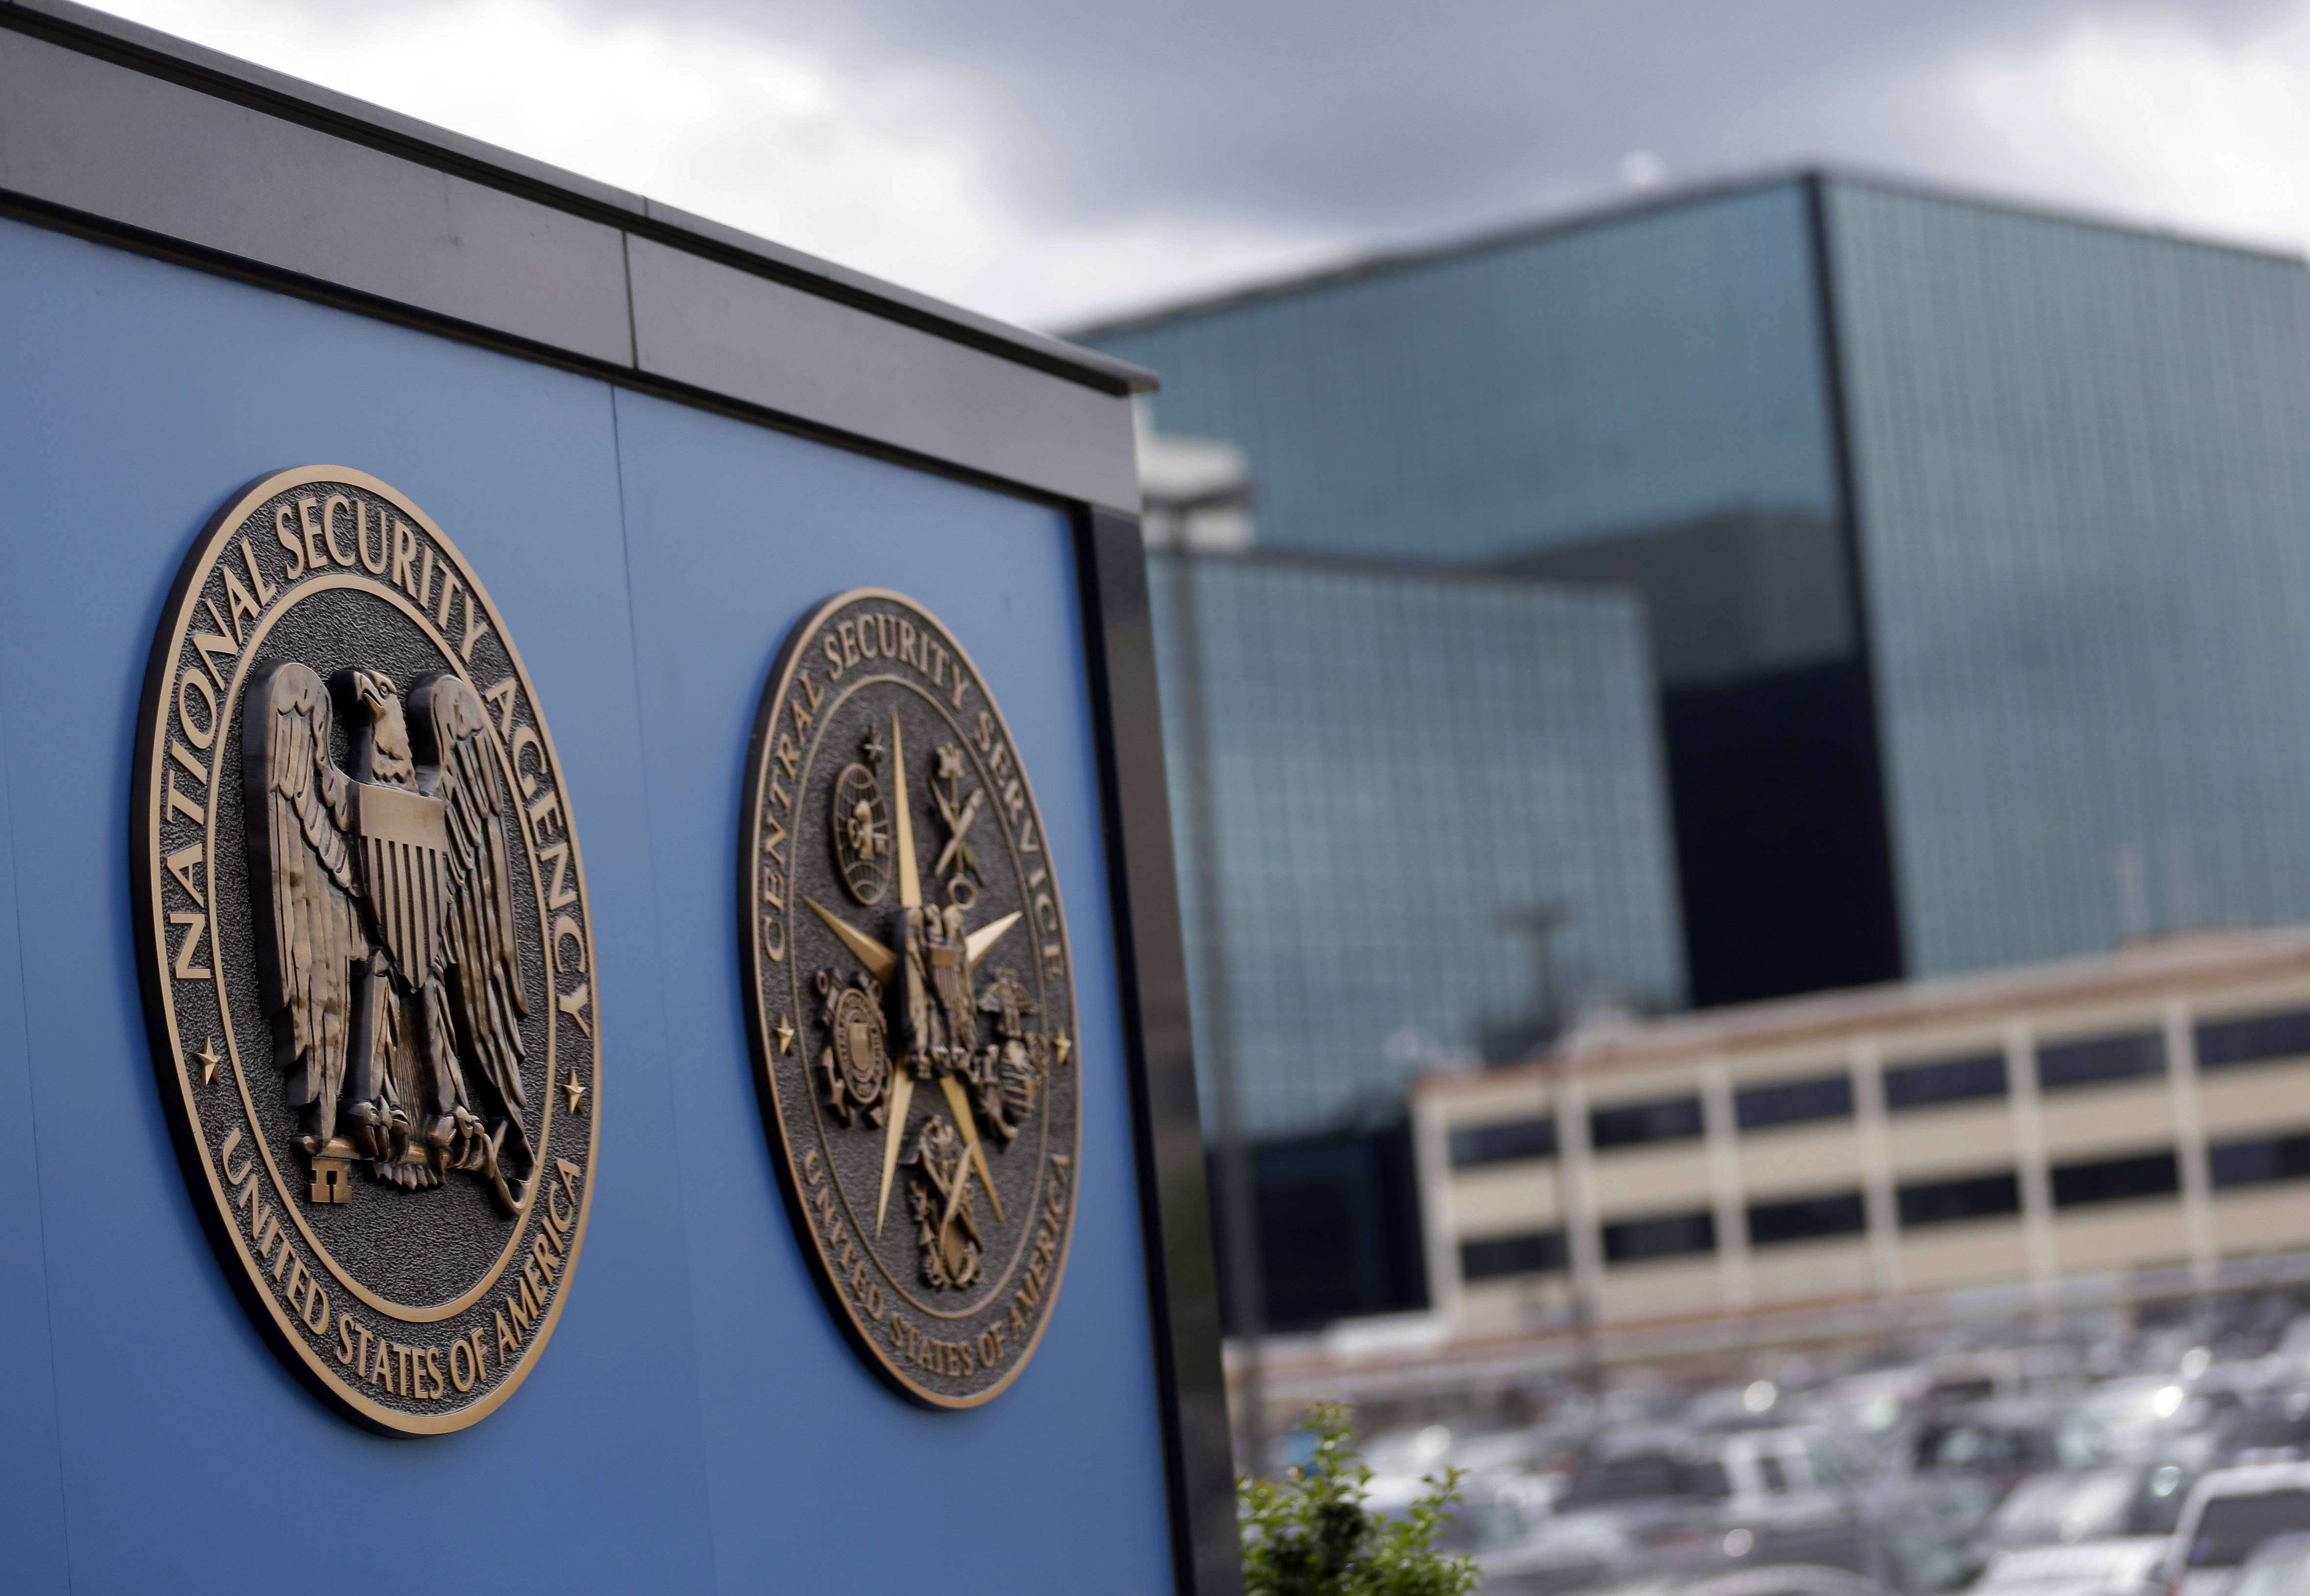 Ordinary users outnumber foreigners in NSA intercepts